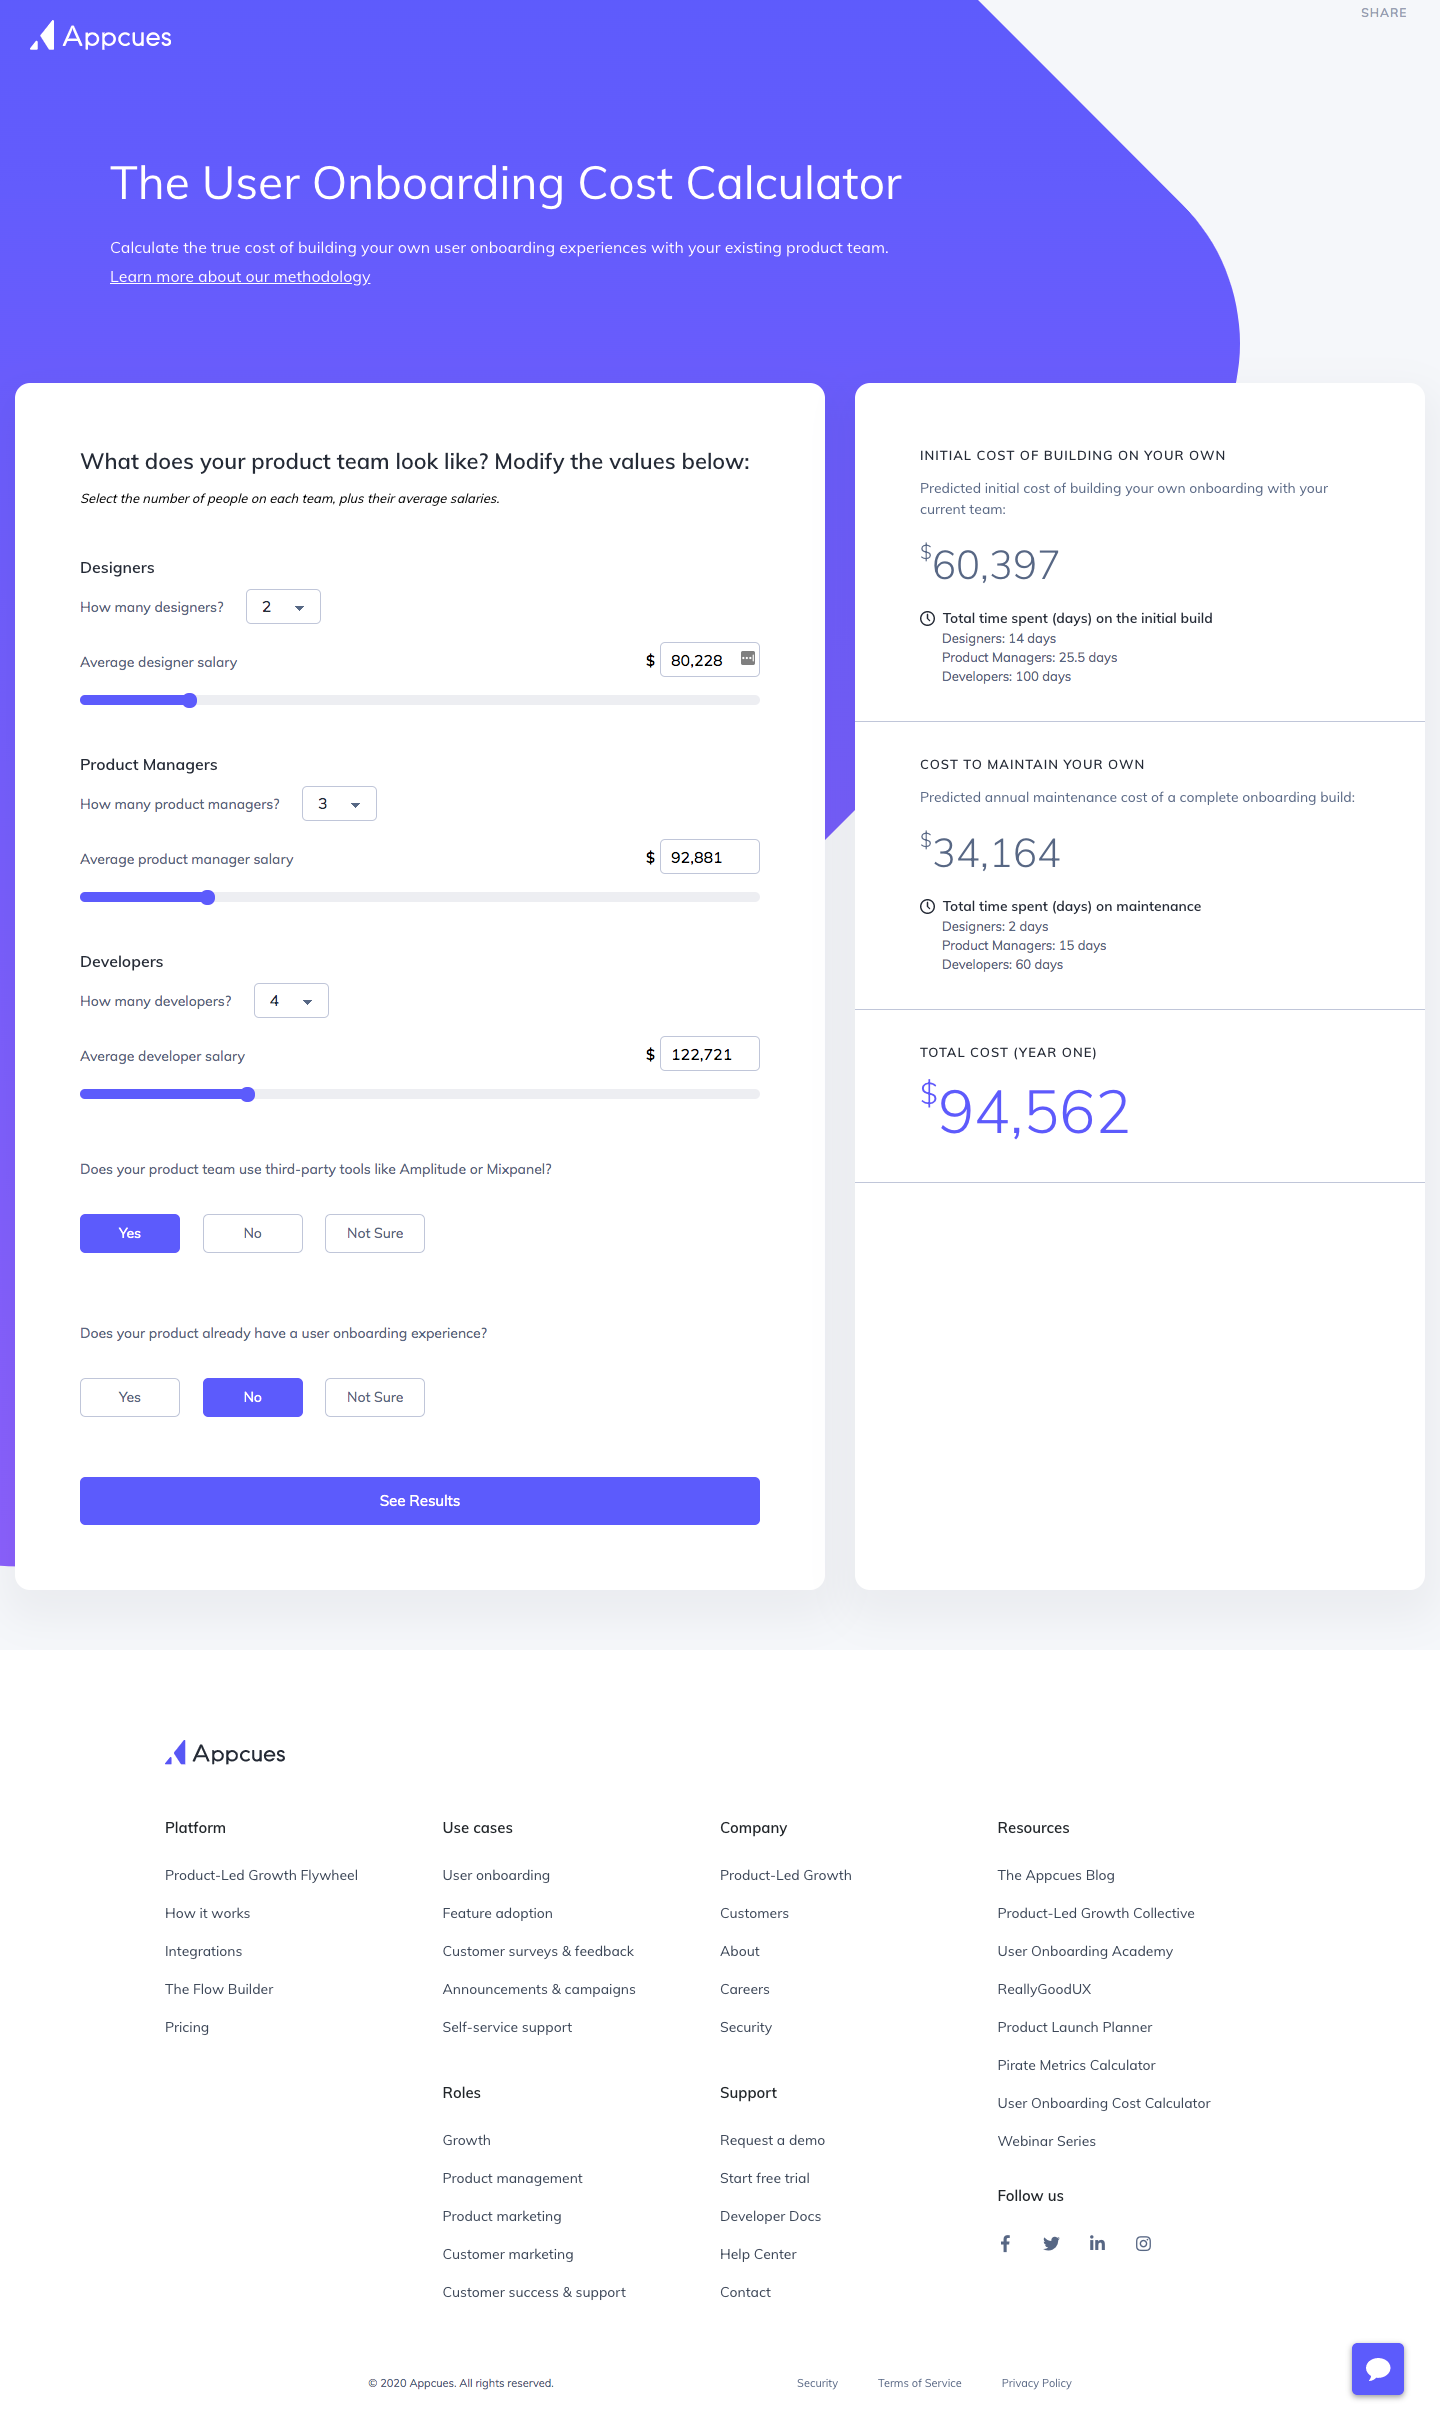 Appcues User Onboarding Cost Calculator